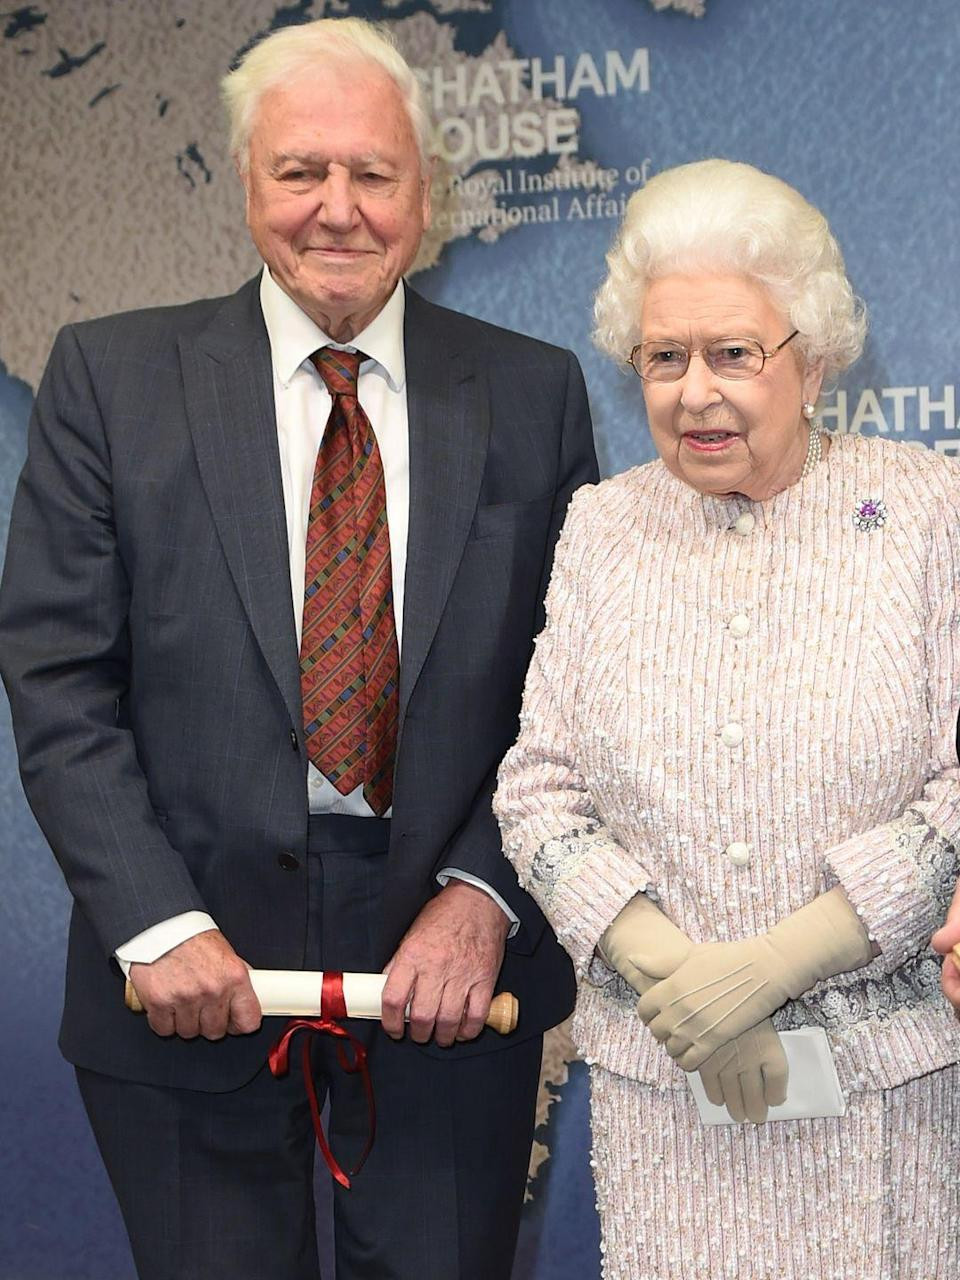 """<p>On the same day that her son Prince Andrew stepped back from public duties in the wake of his interview about his relationship with Jeffrey Epstein, <a href=""""https://www.townandcountrymag.com/society/tradition/a26990236/david-attenborough-queen-elizabeth-prince-william-royal-family-friend/"""" rel=""""nofollow noopener"""" target=""""_blank"""" data-ylk=""""slk:the Queen presented an award to David Attenborough."""" class=""""link rapid-noclick-resp"""">the Queen presented an award to David Attenborough. </a></p>"""